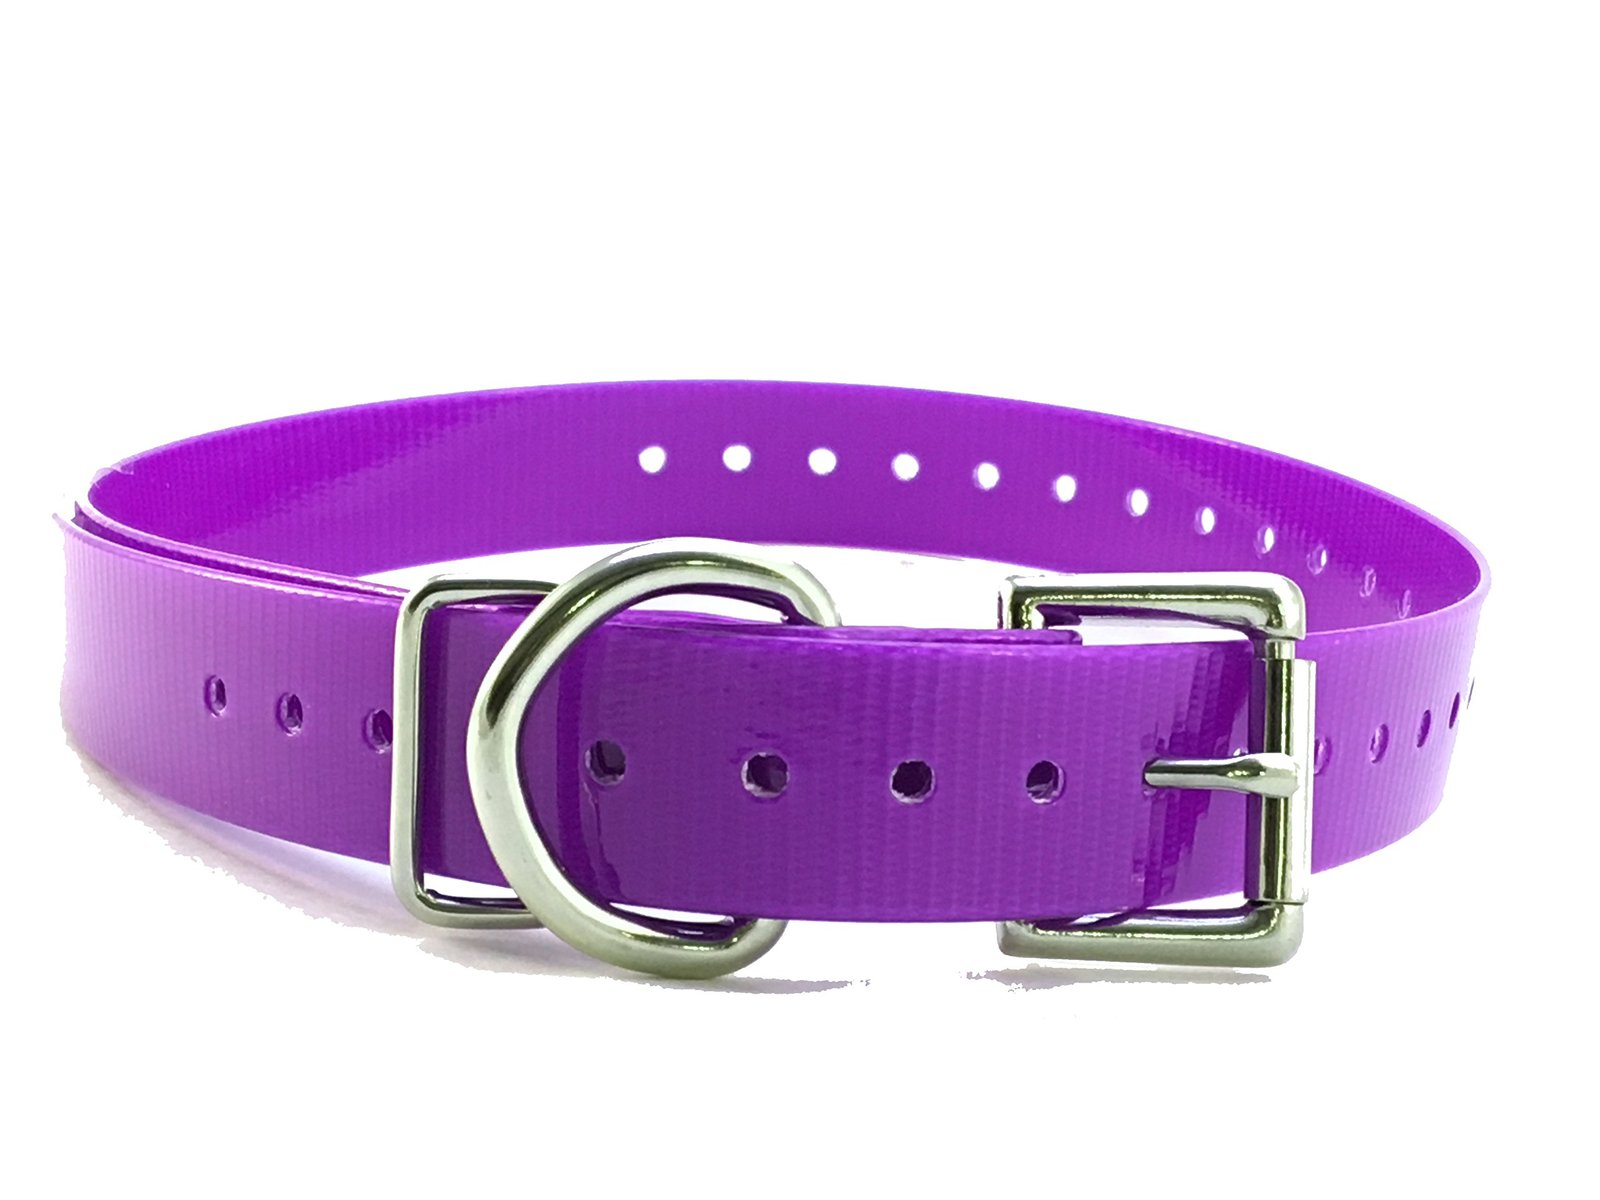 Sportdog Compatible 3/4' High Flex Waterproof Roller Buckle Dog Strap, Purple